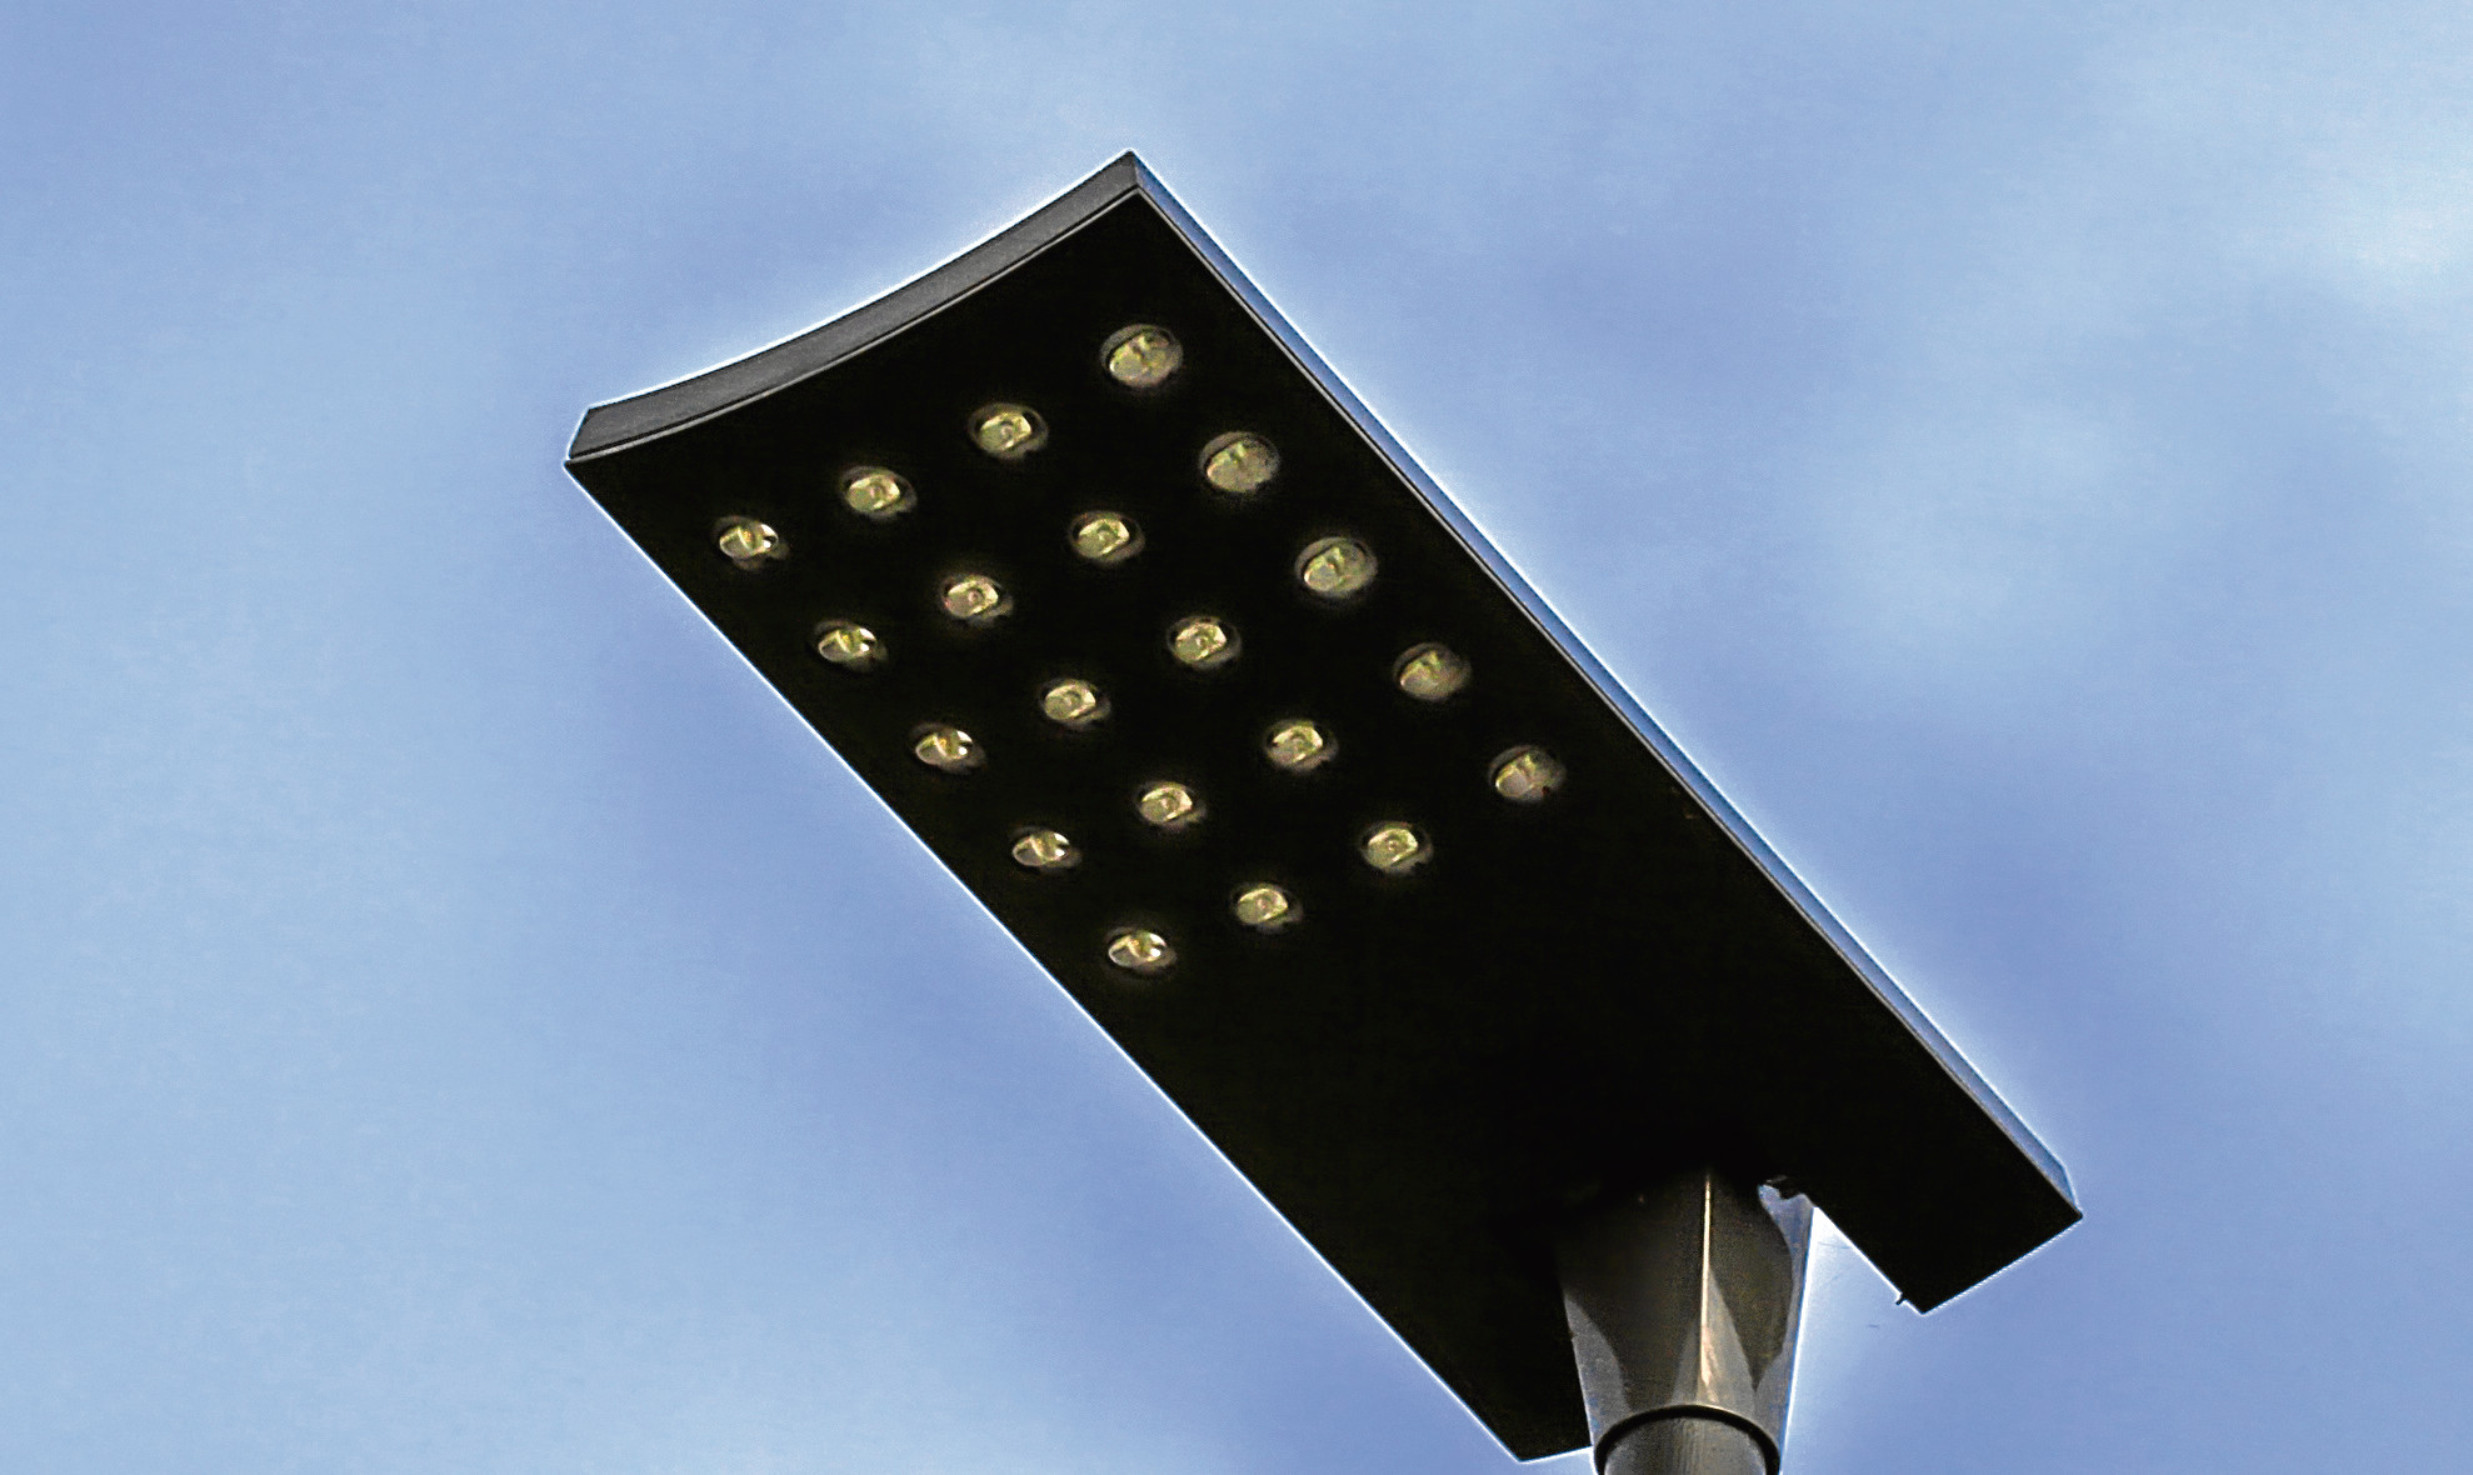 One of the new-style LED street lamps.